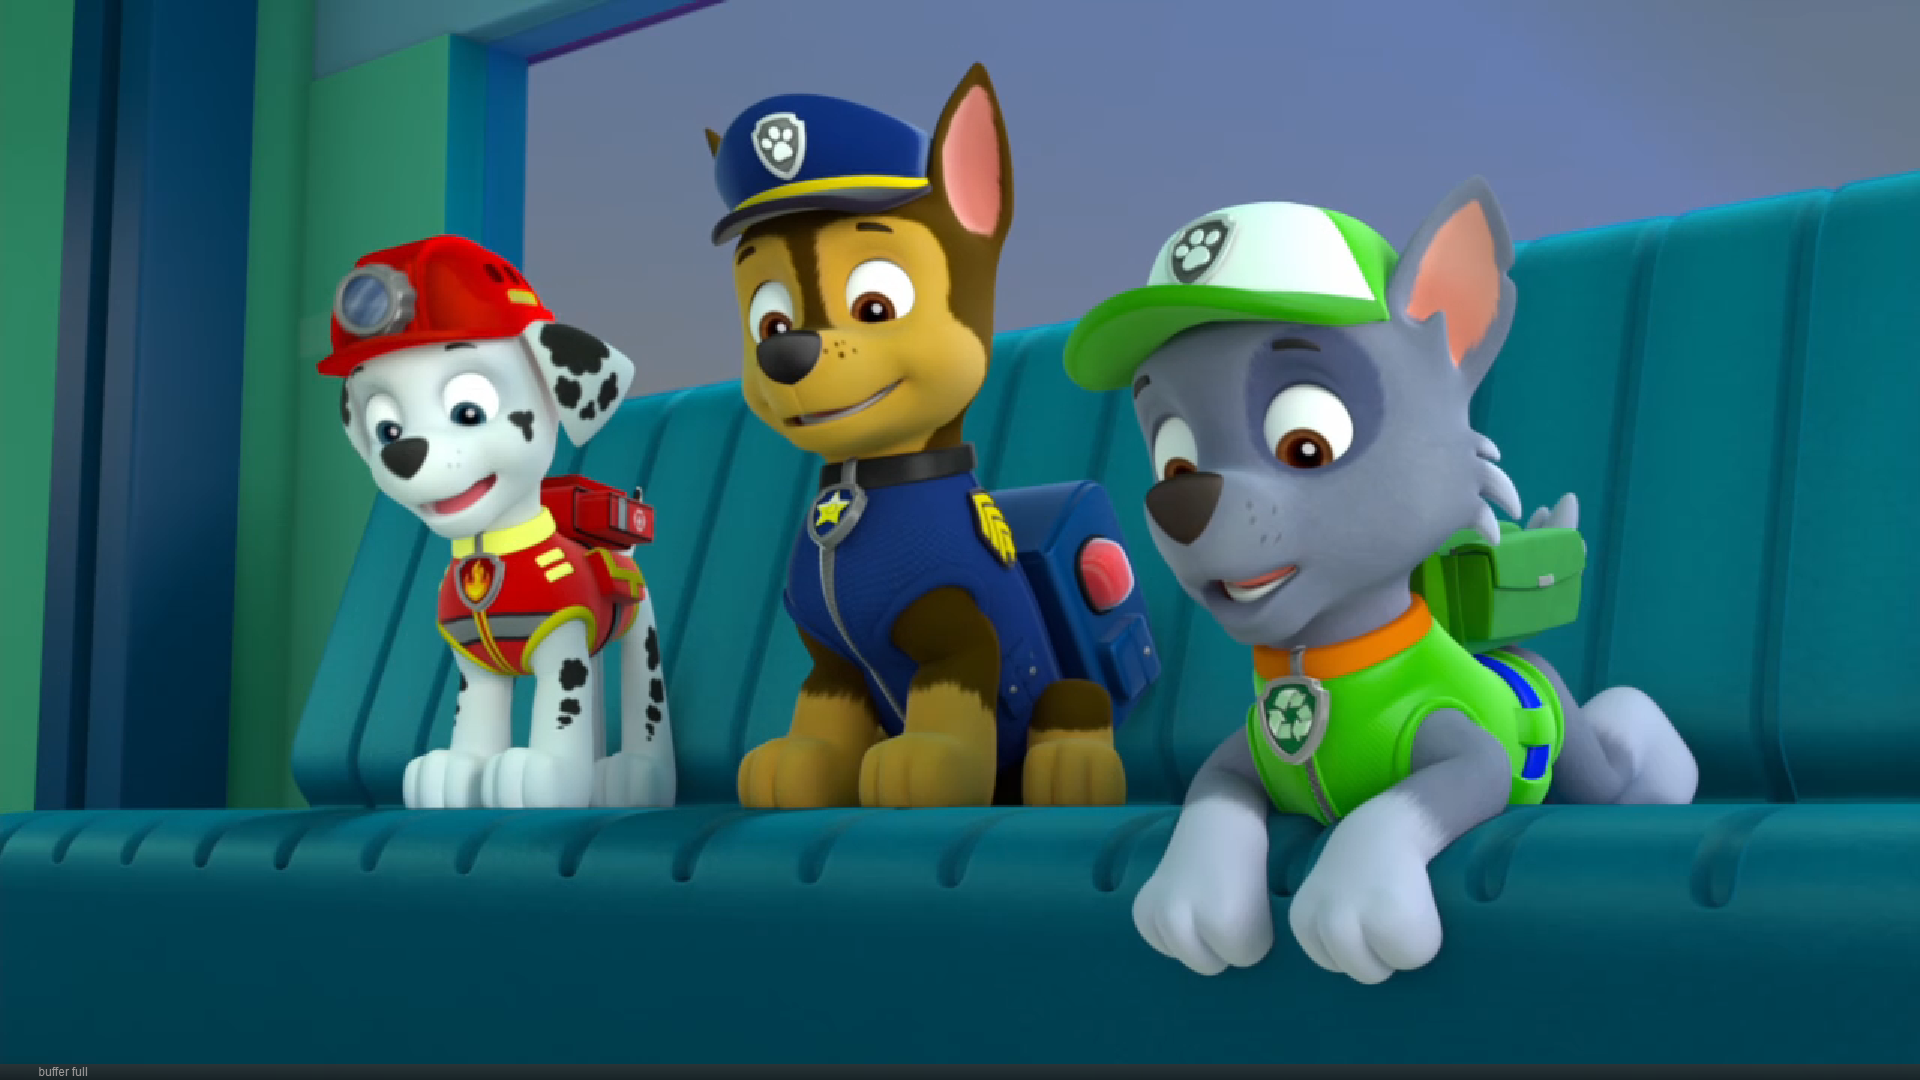 Paw Patrol Images Rocky In Season 2 Hd Wallpaper And Background